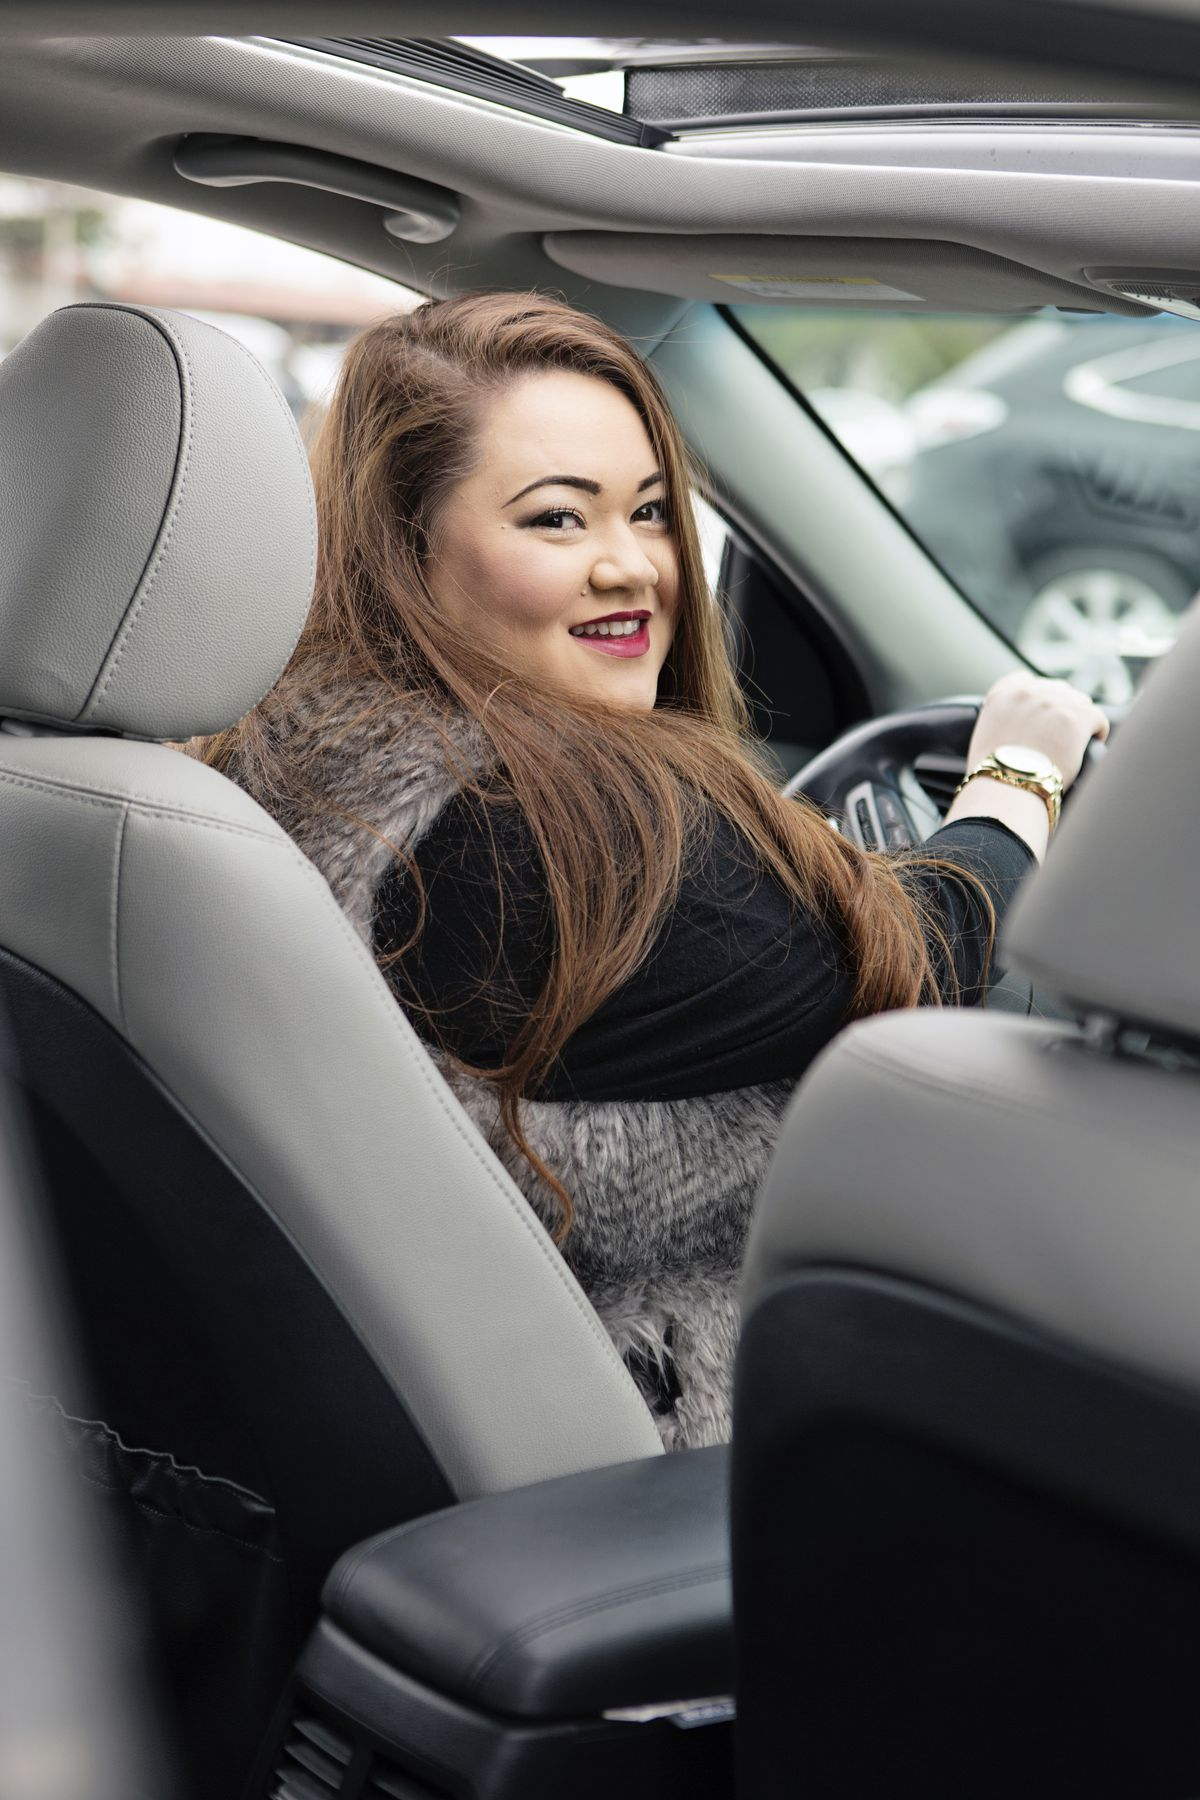 Ladies Who Lyft: Four Local Drivers Share Their Traffic